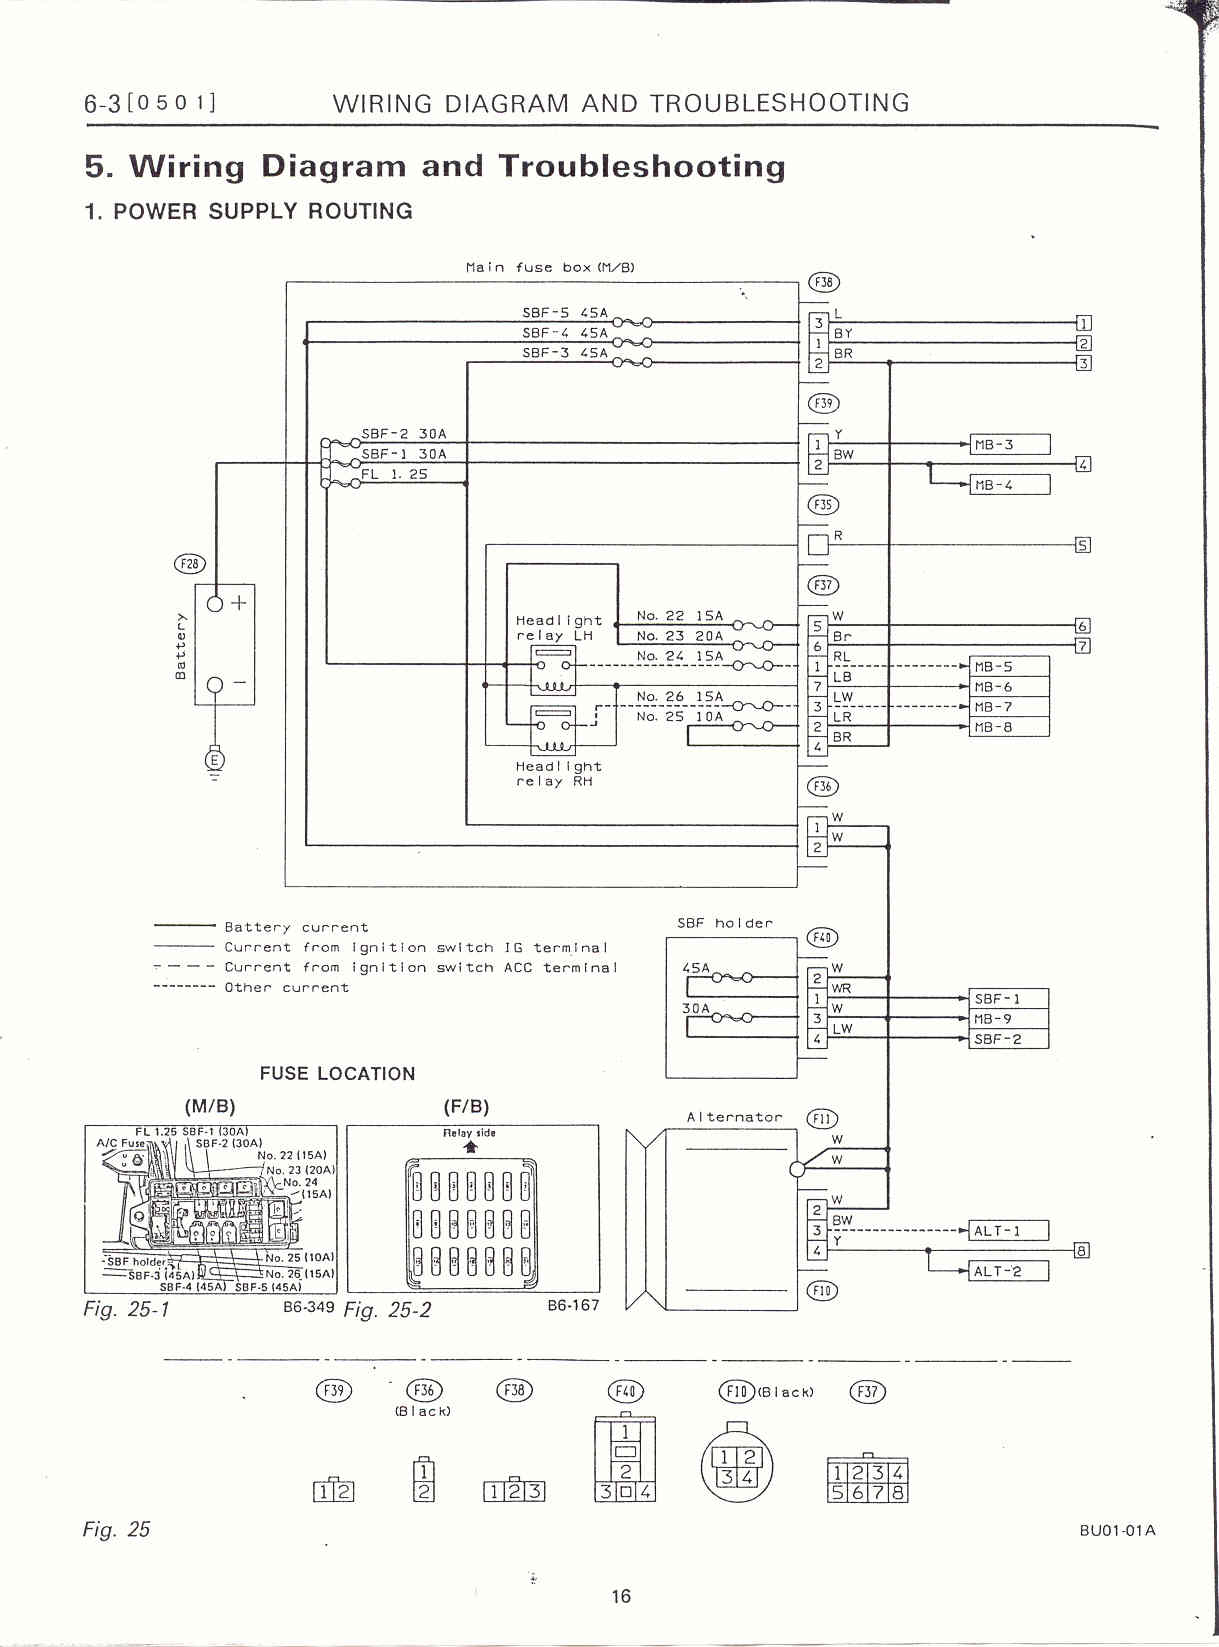 2006 subaru impreza wiring diagram pv installation ecu electrical problem nasioc